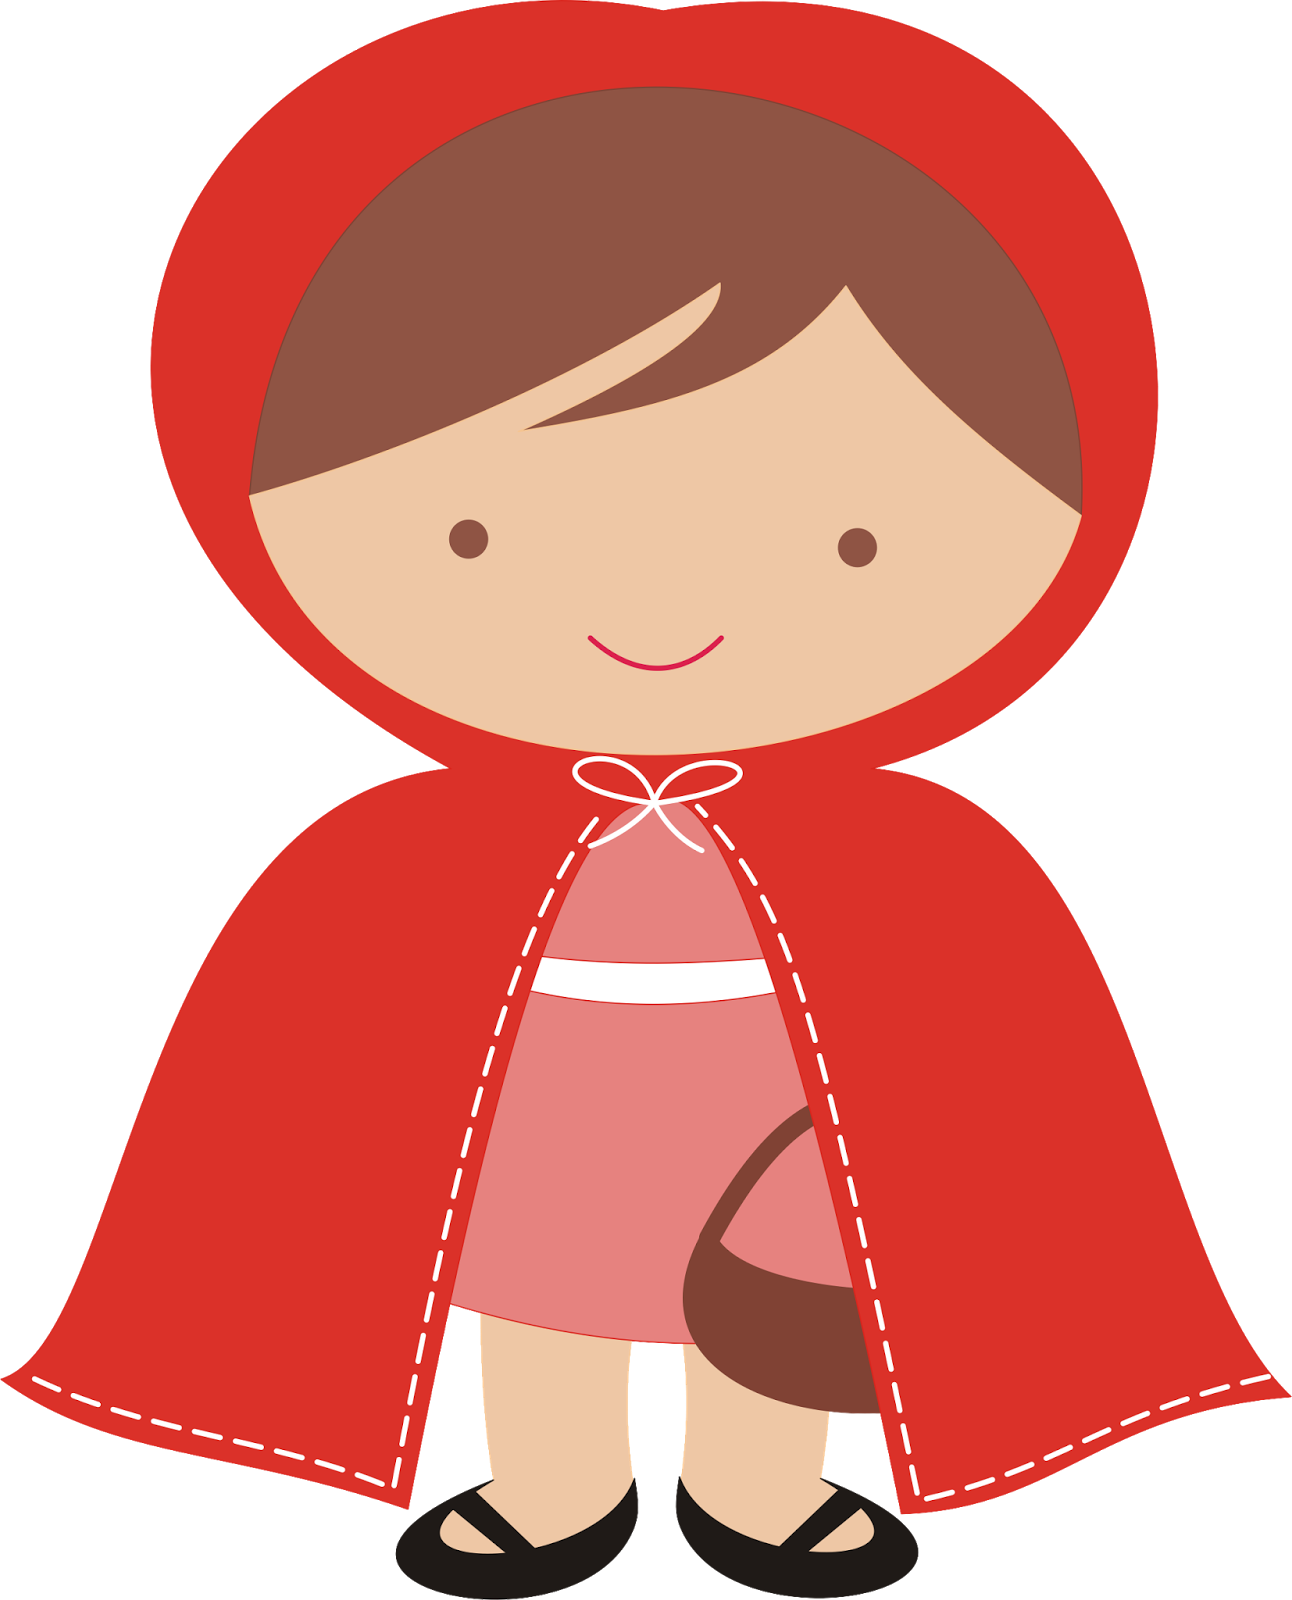 Wolf clipart red riding hood. Silhouette at getdrawings com